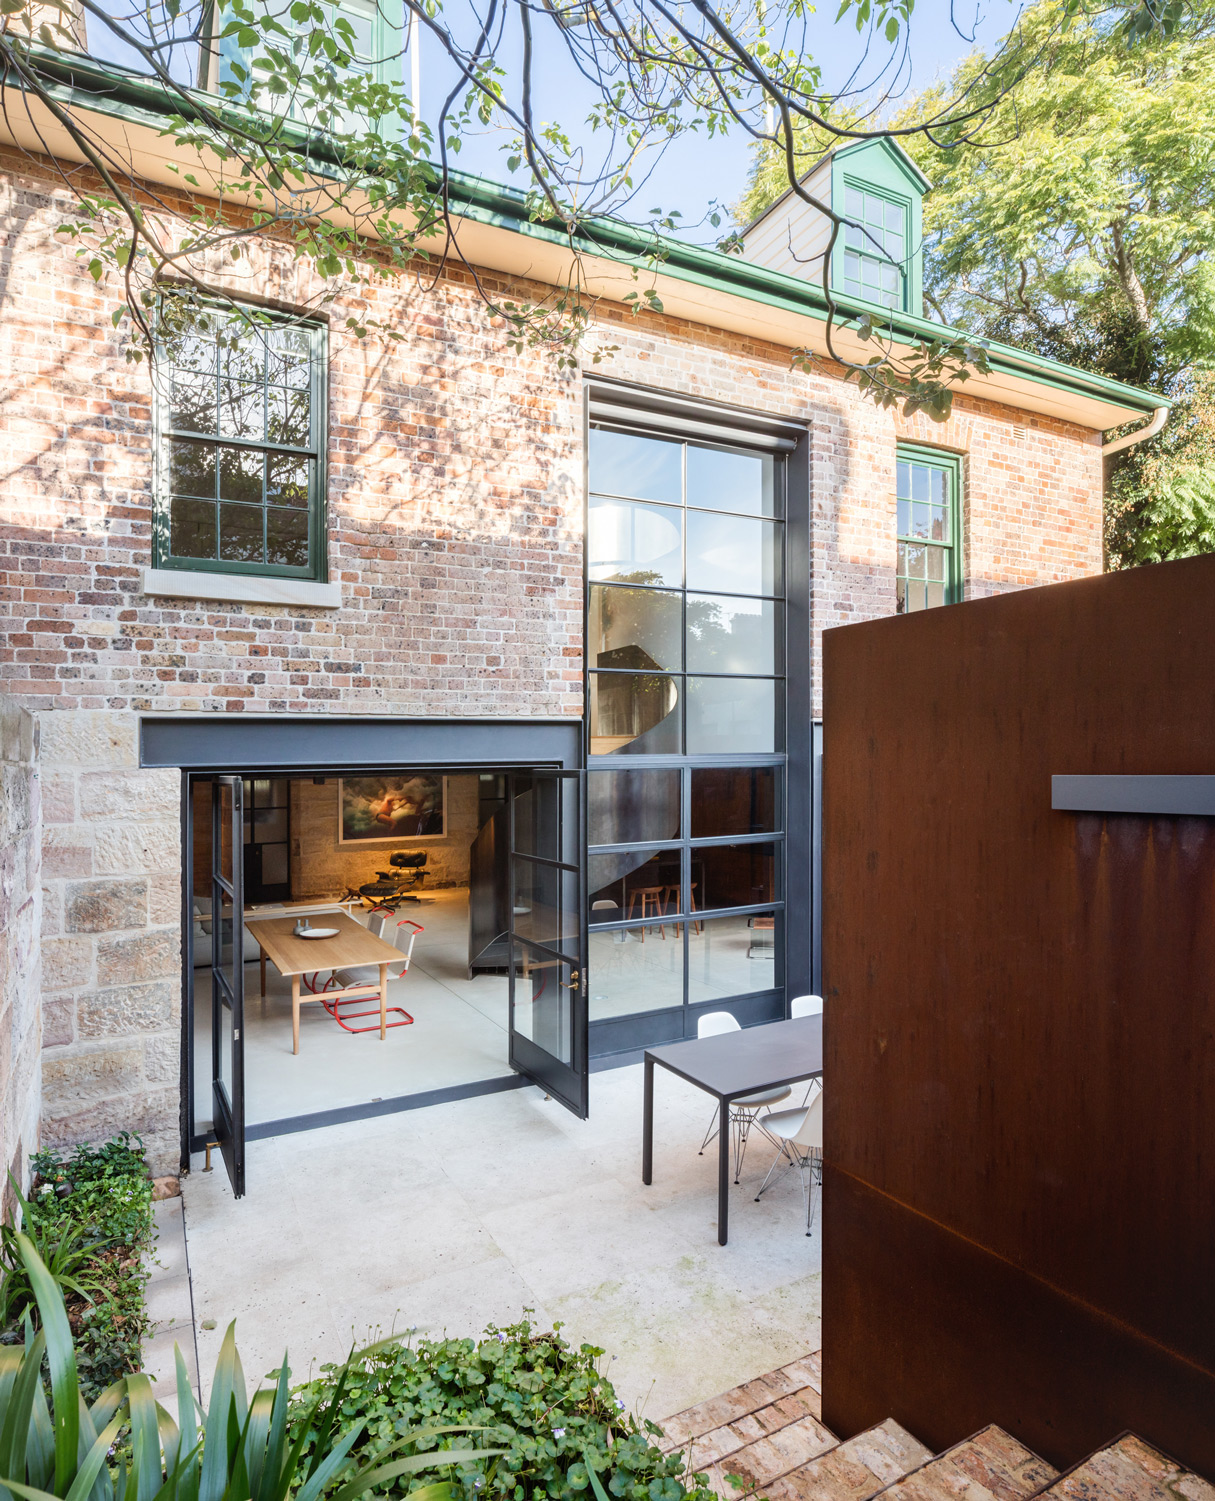 The Kitchen Is Then Extended Outdoors Via A Dcs By Fisher & Paykel Grill, Which Gives Outdoor Cooking All The Functionality Of